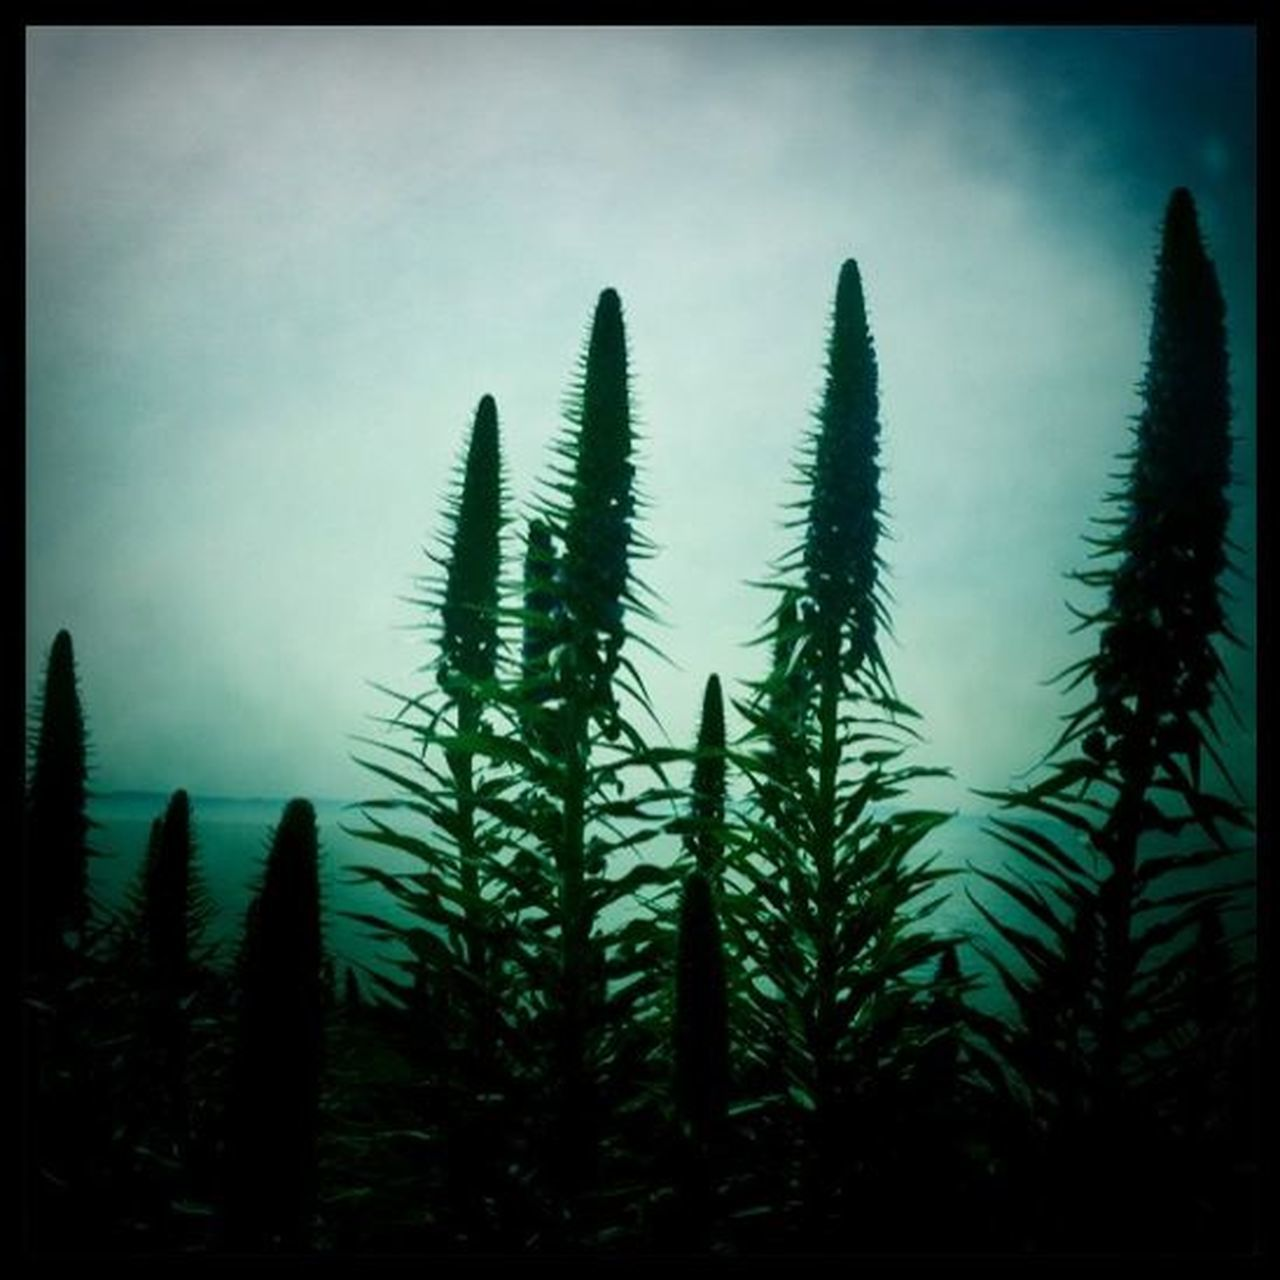 growth, nature, plant, no people, tranquility, tranquil scene, beauty in nature, outdoors, day, sky, freshness, close-up